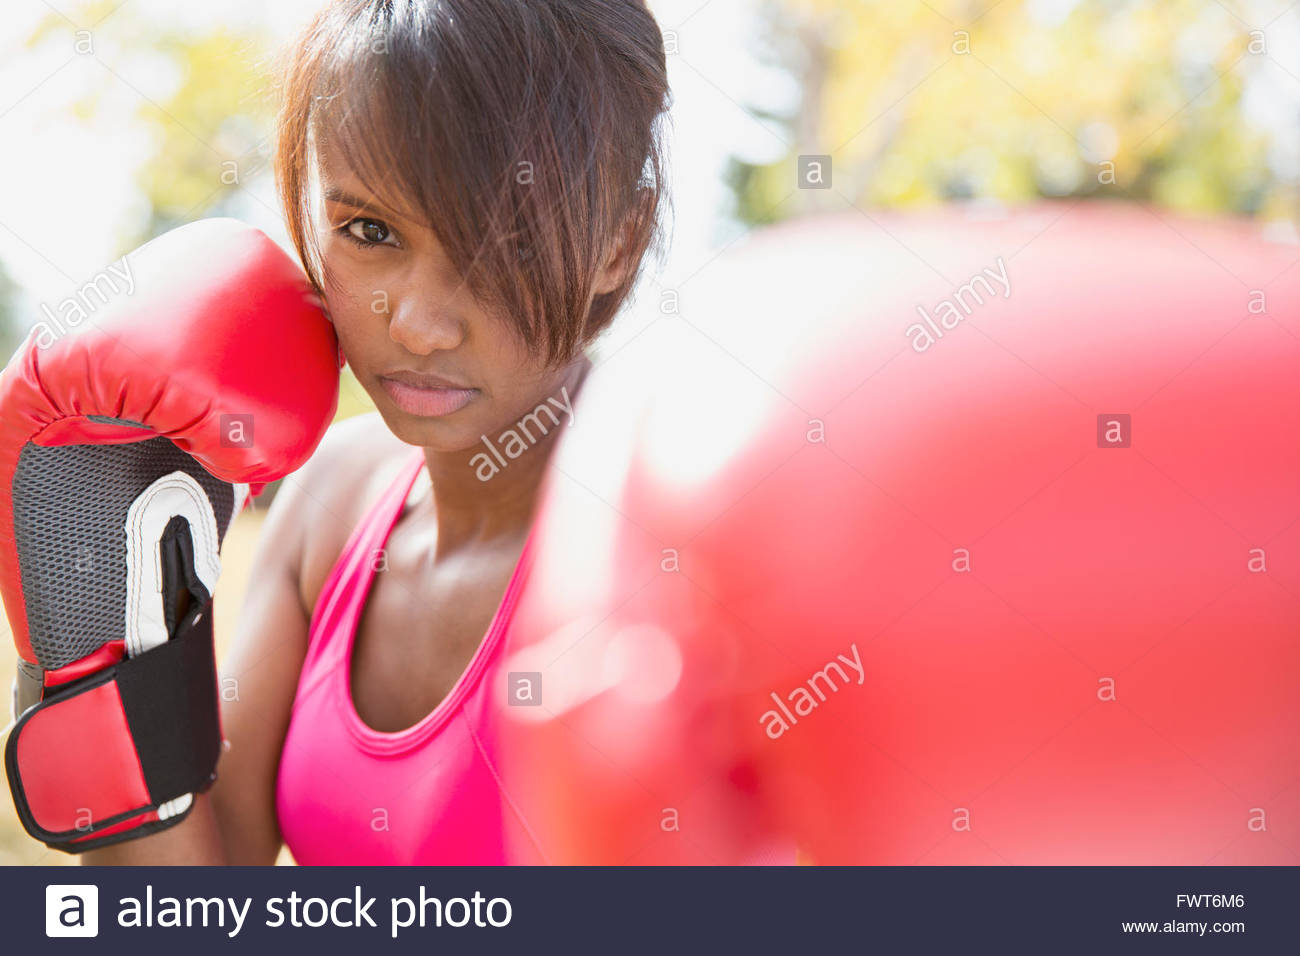 Woman with boxing gloves doing outdoor workout. - Stock Image